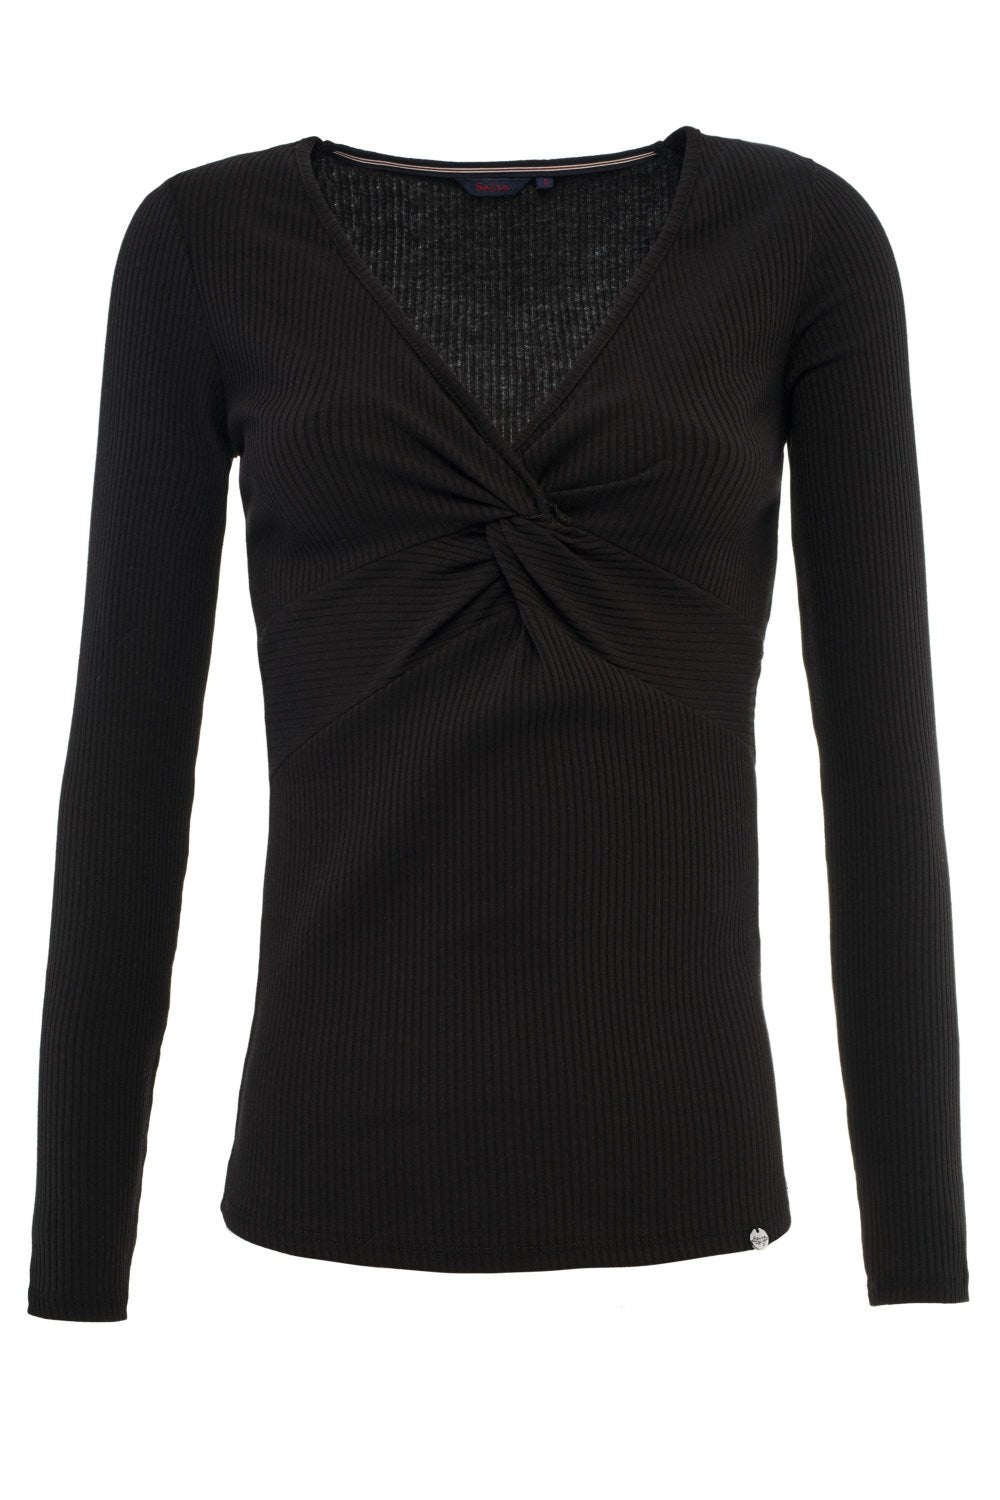 Rib black knot top